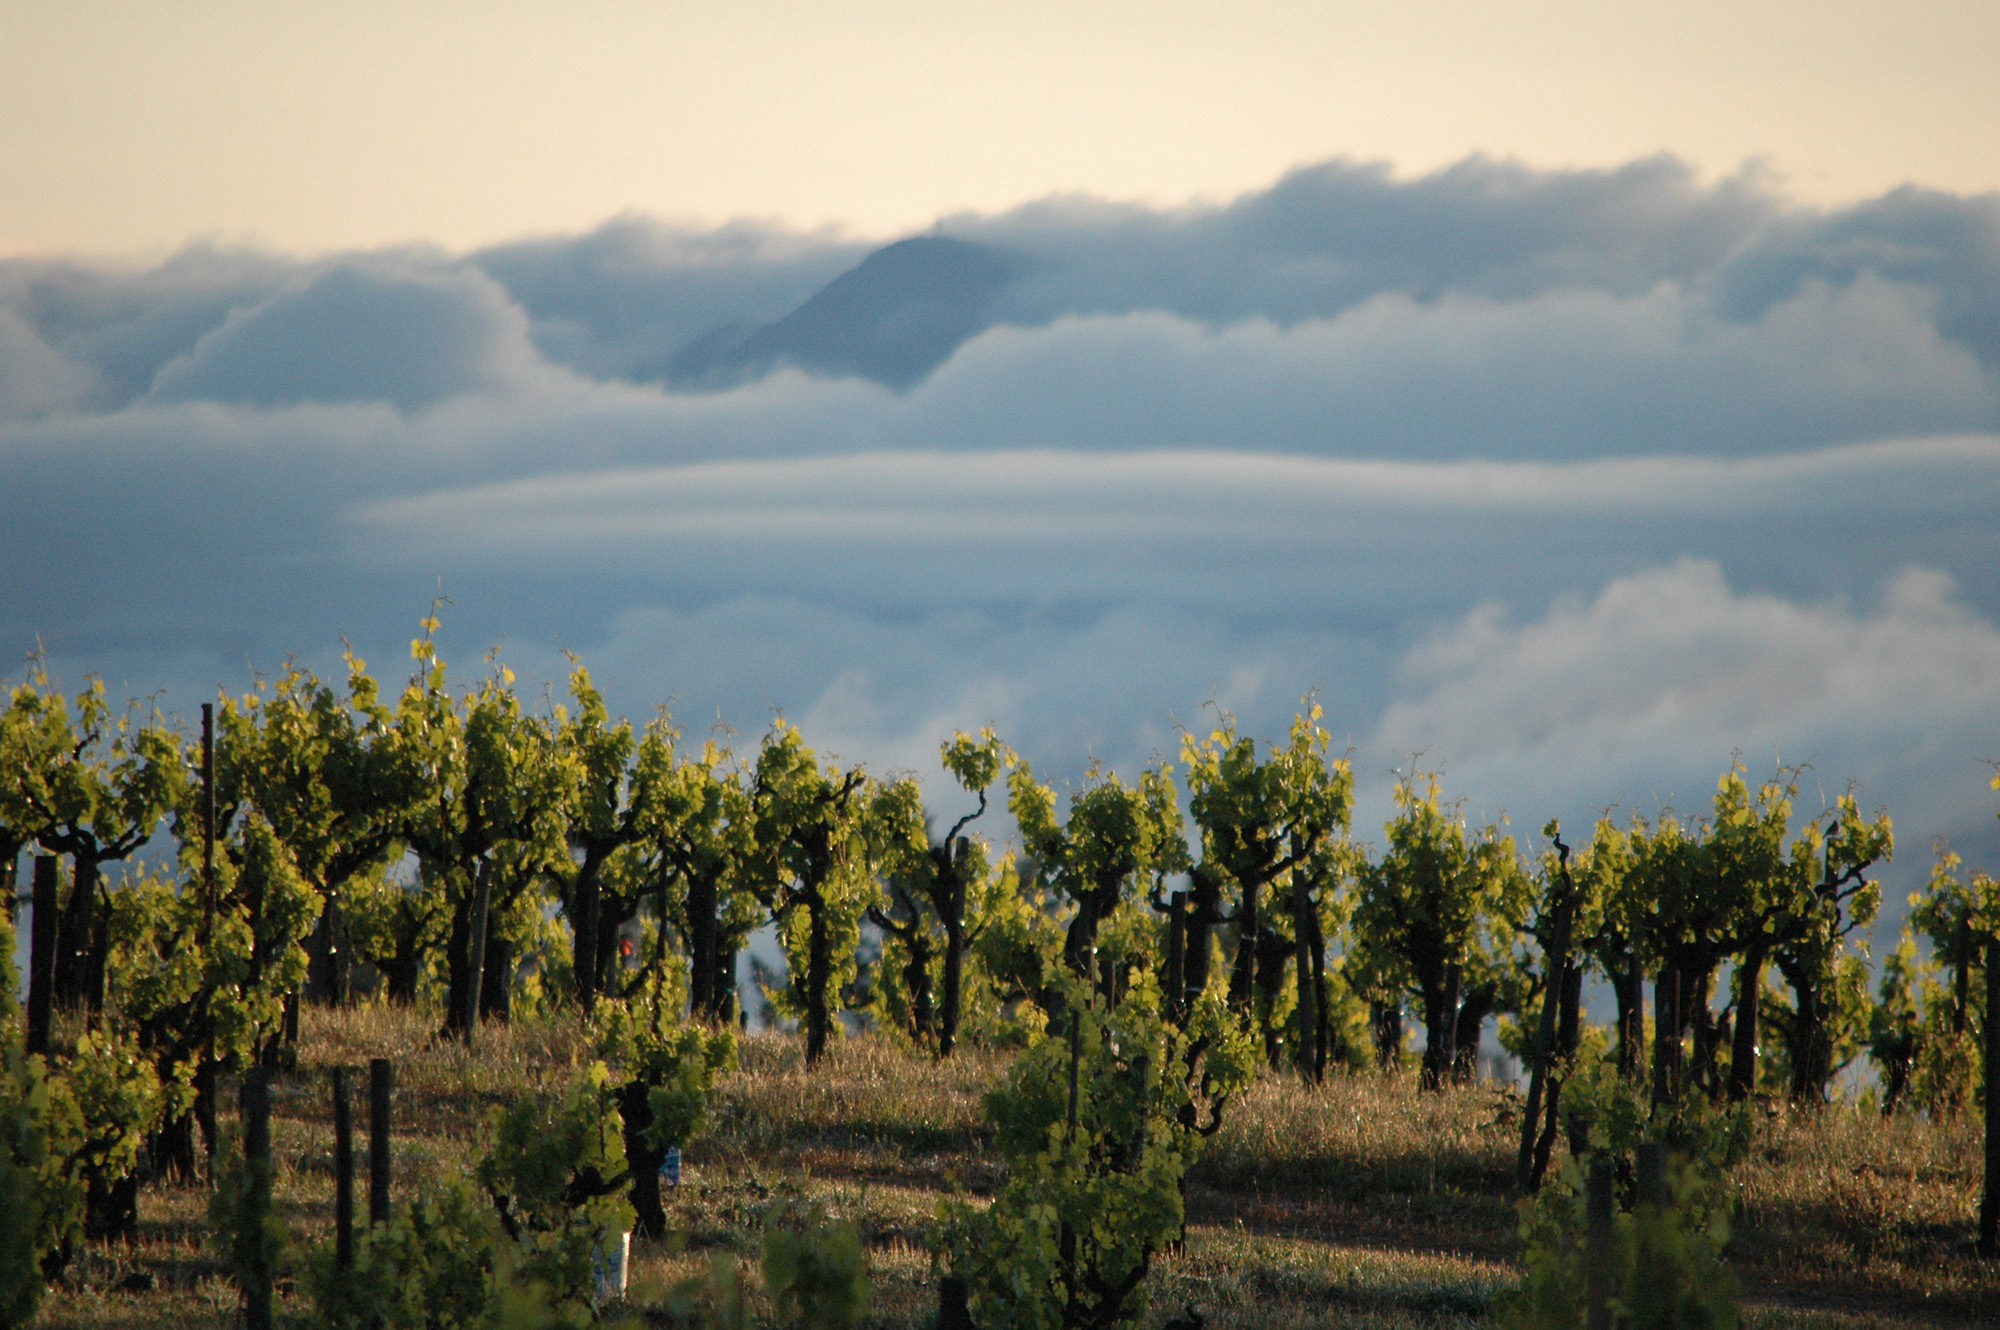 lemorel zinfandel vines in clouds